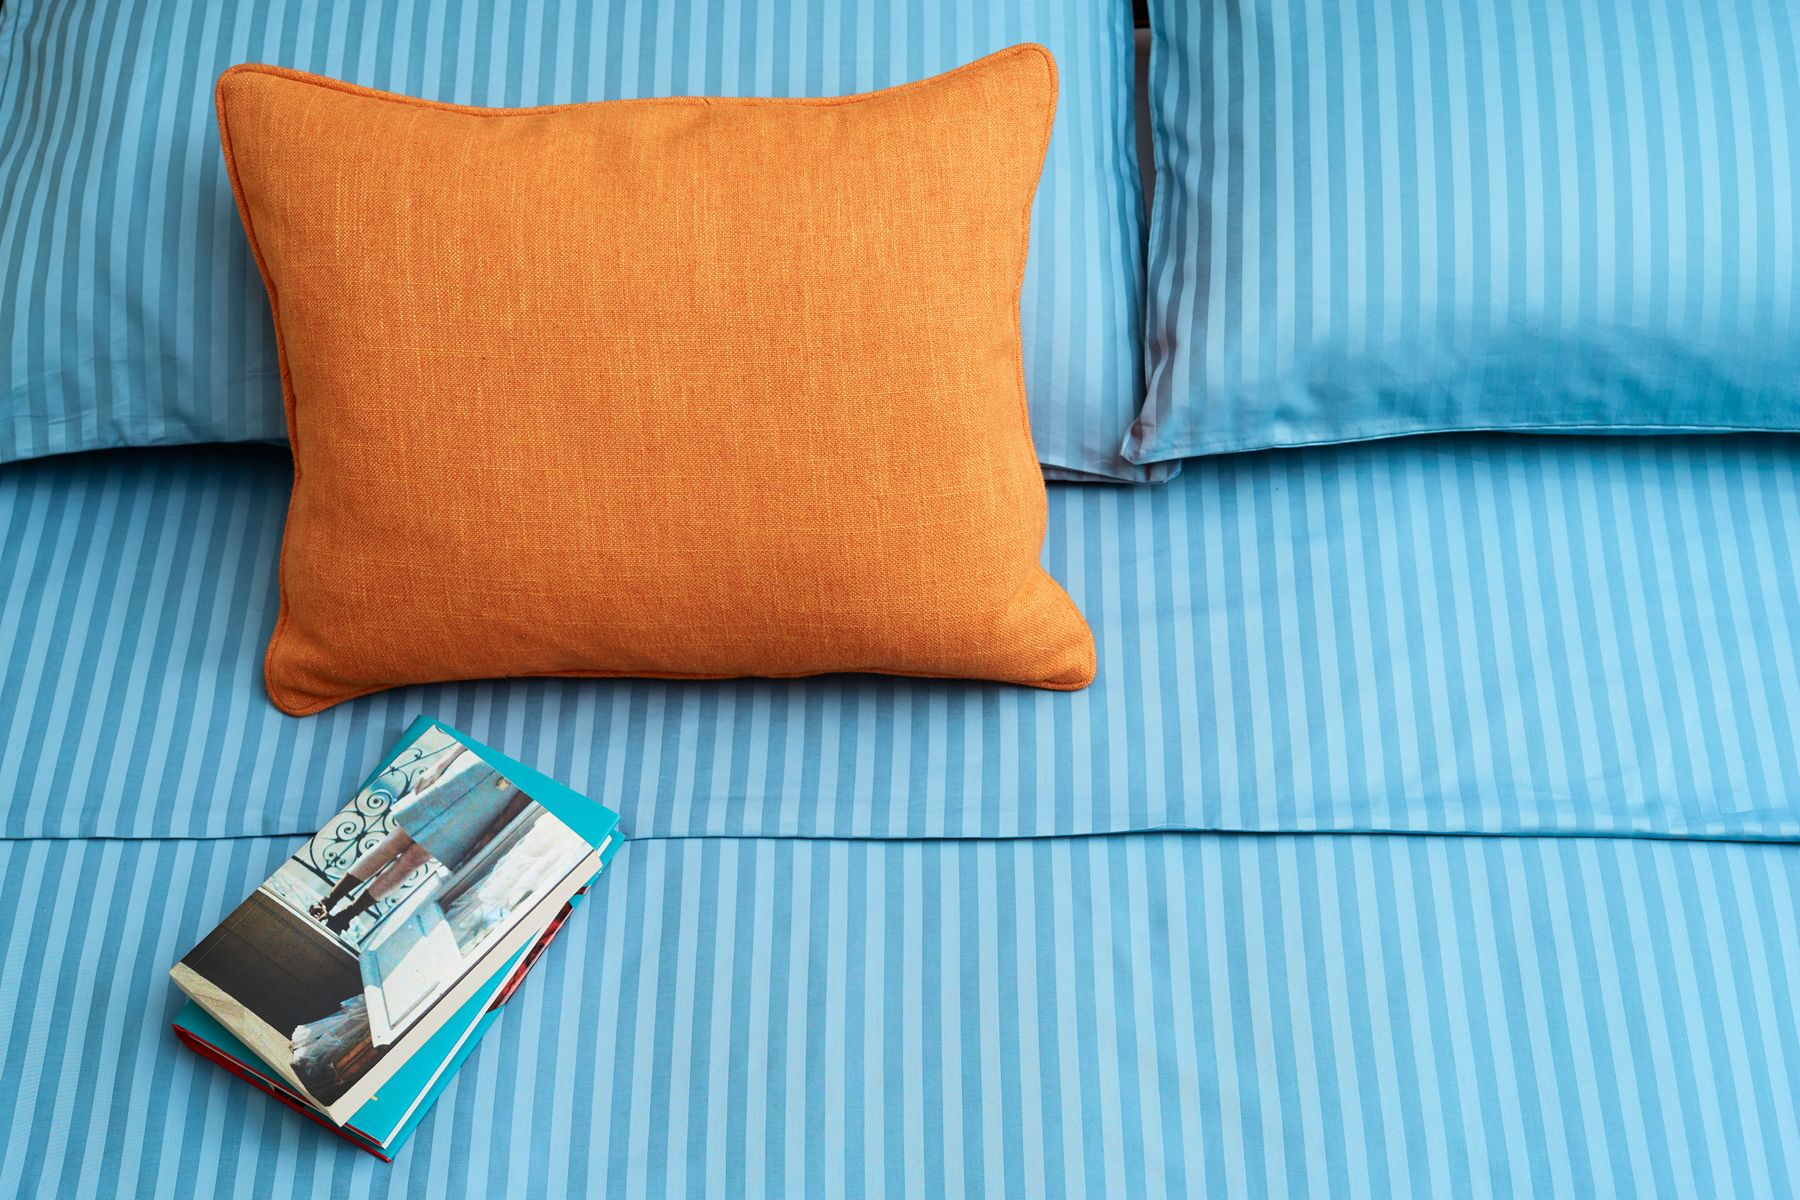 tidy bed with blue sheets and orange pillow